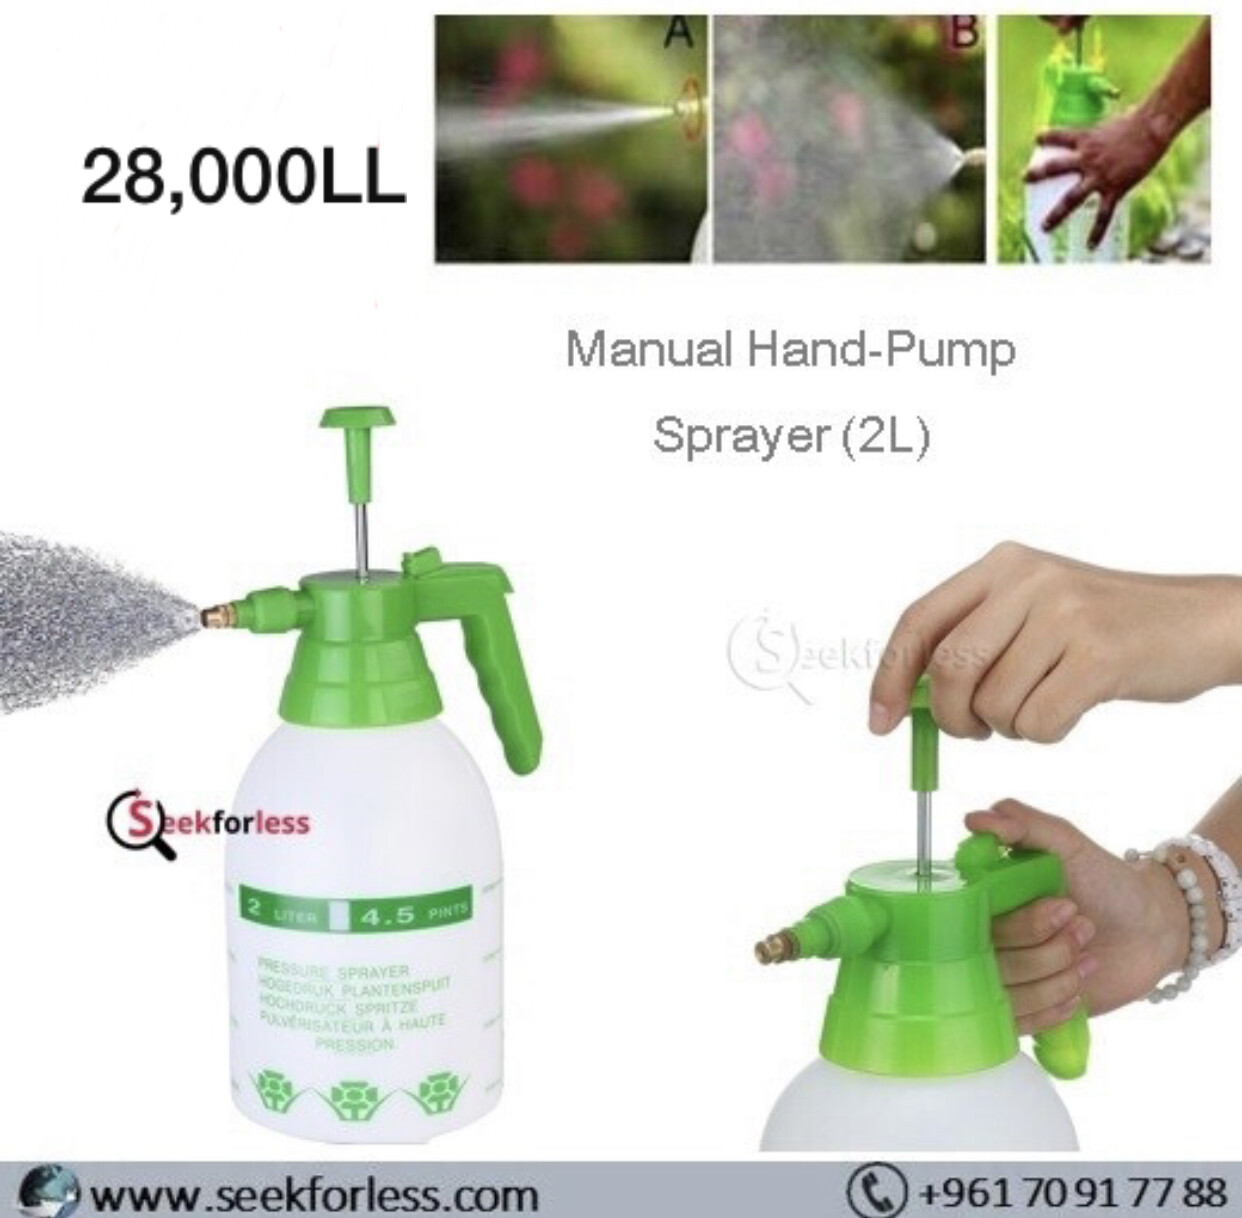 Hand-Pump Sprayer